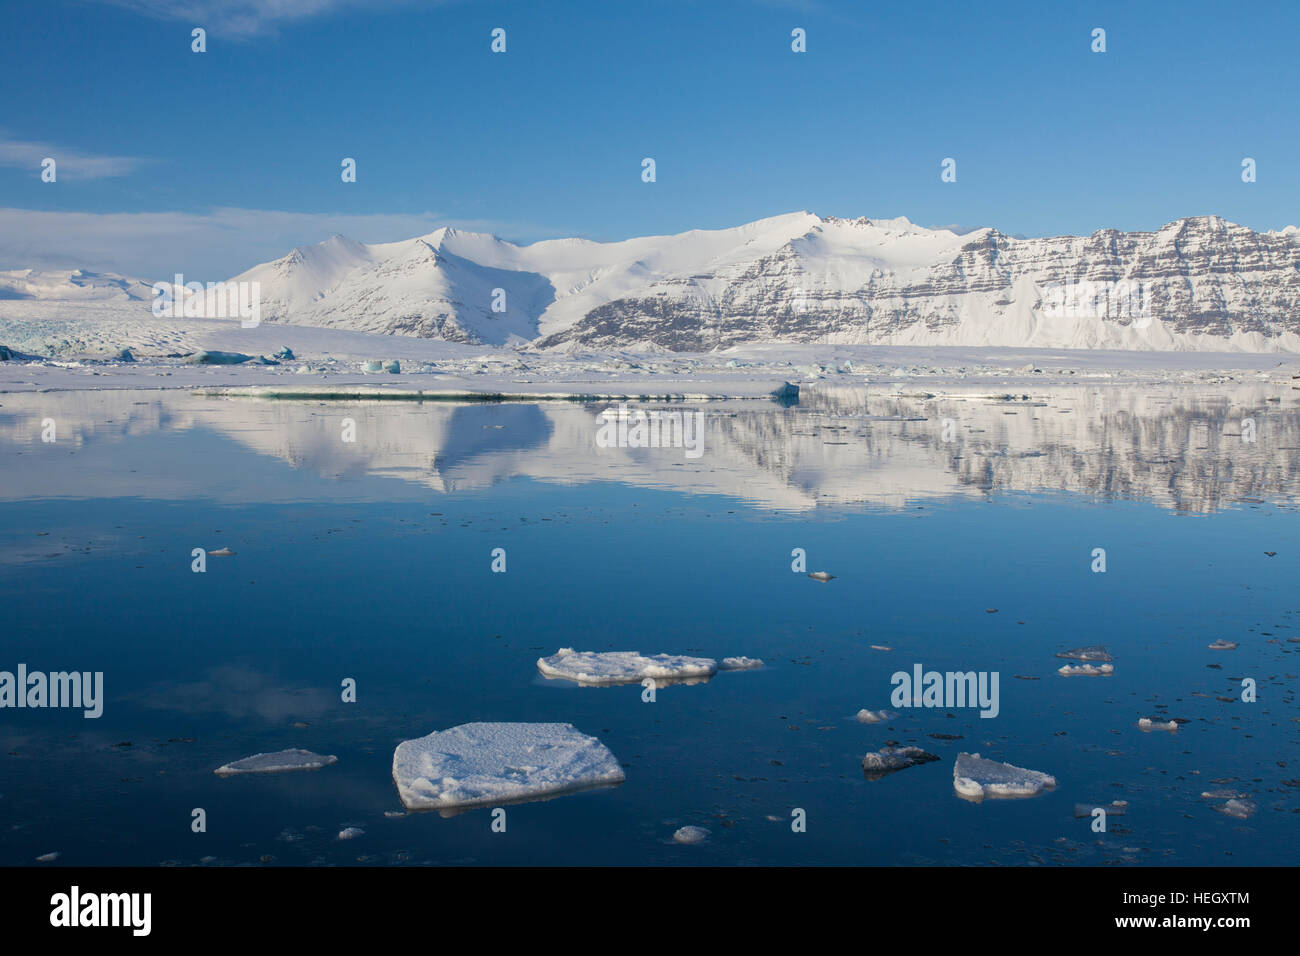 Drift ice floating in Jökulsárlón glacier lagoon in winter, glacial lake in southeast Iceland - Stock Image